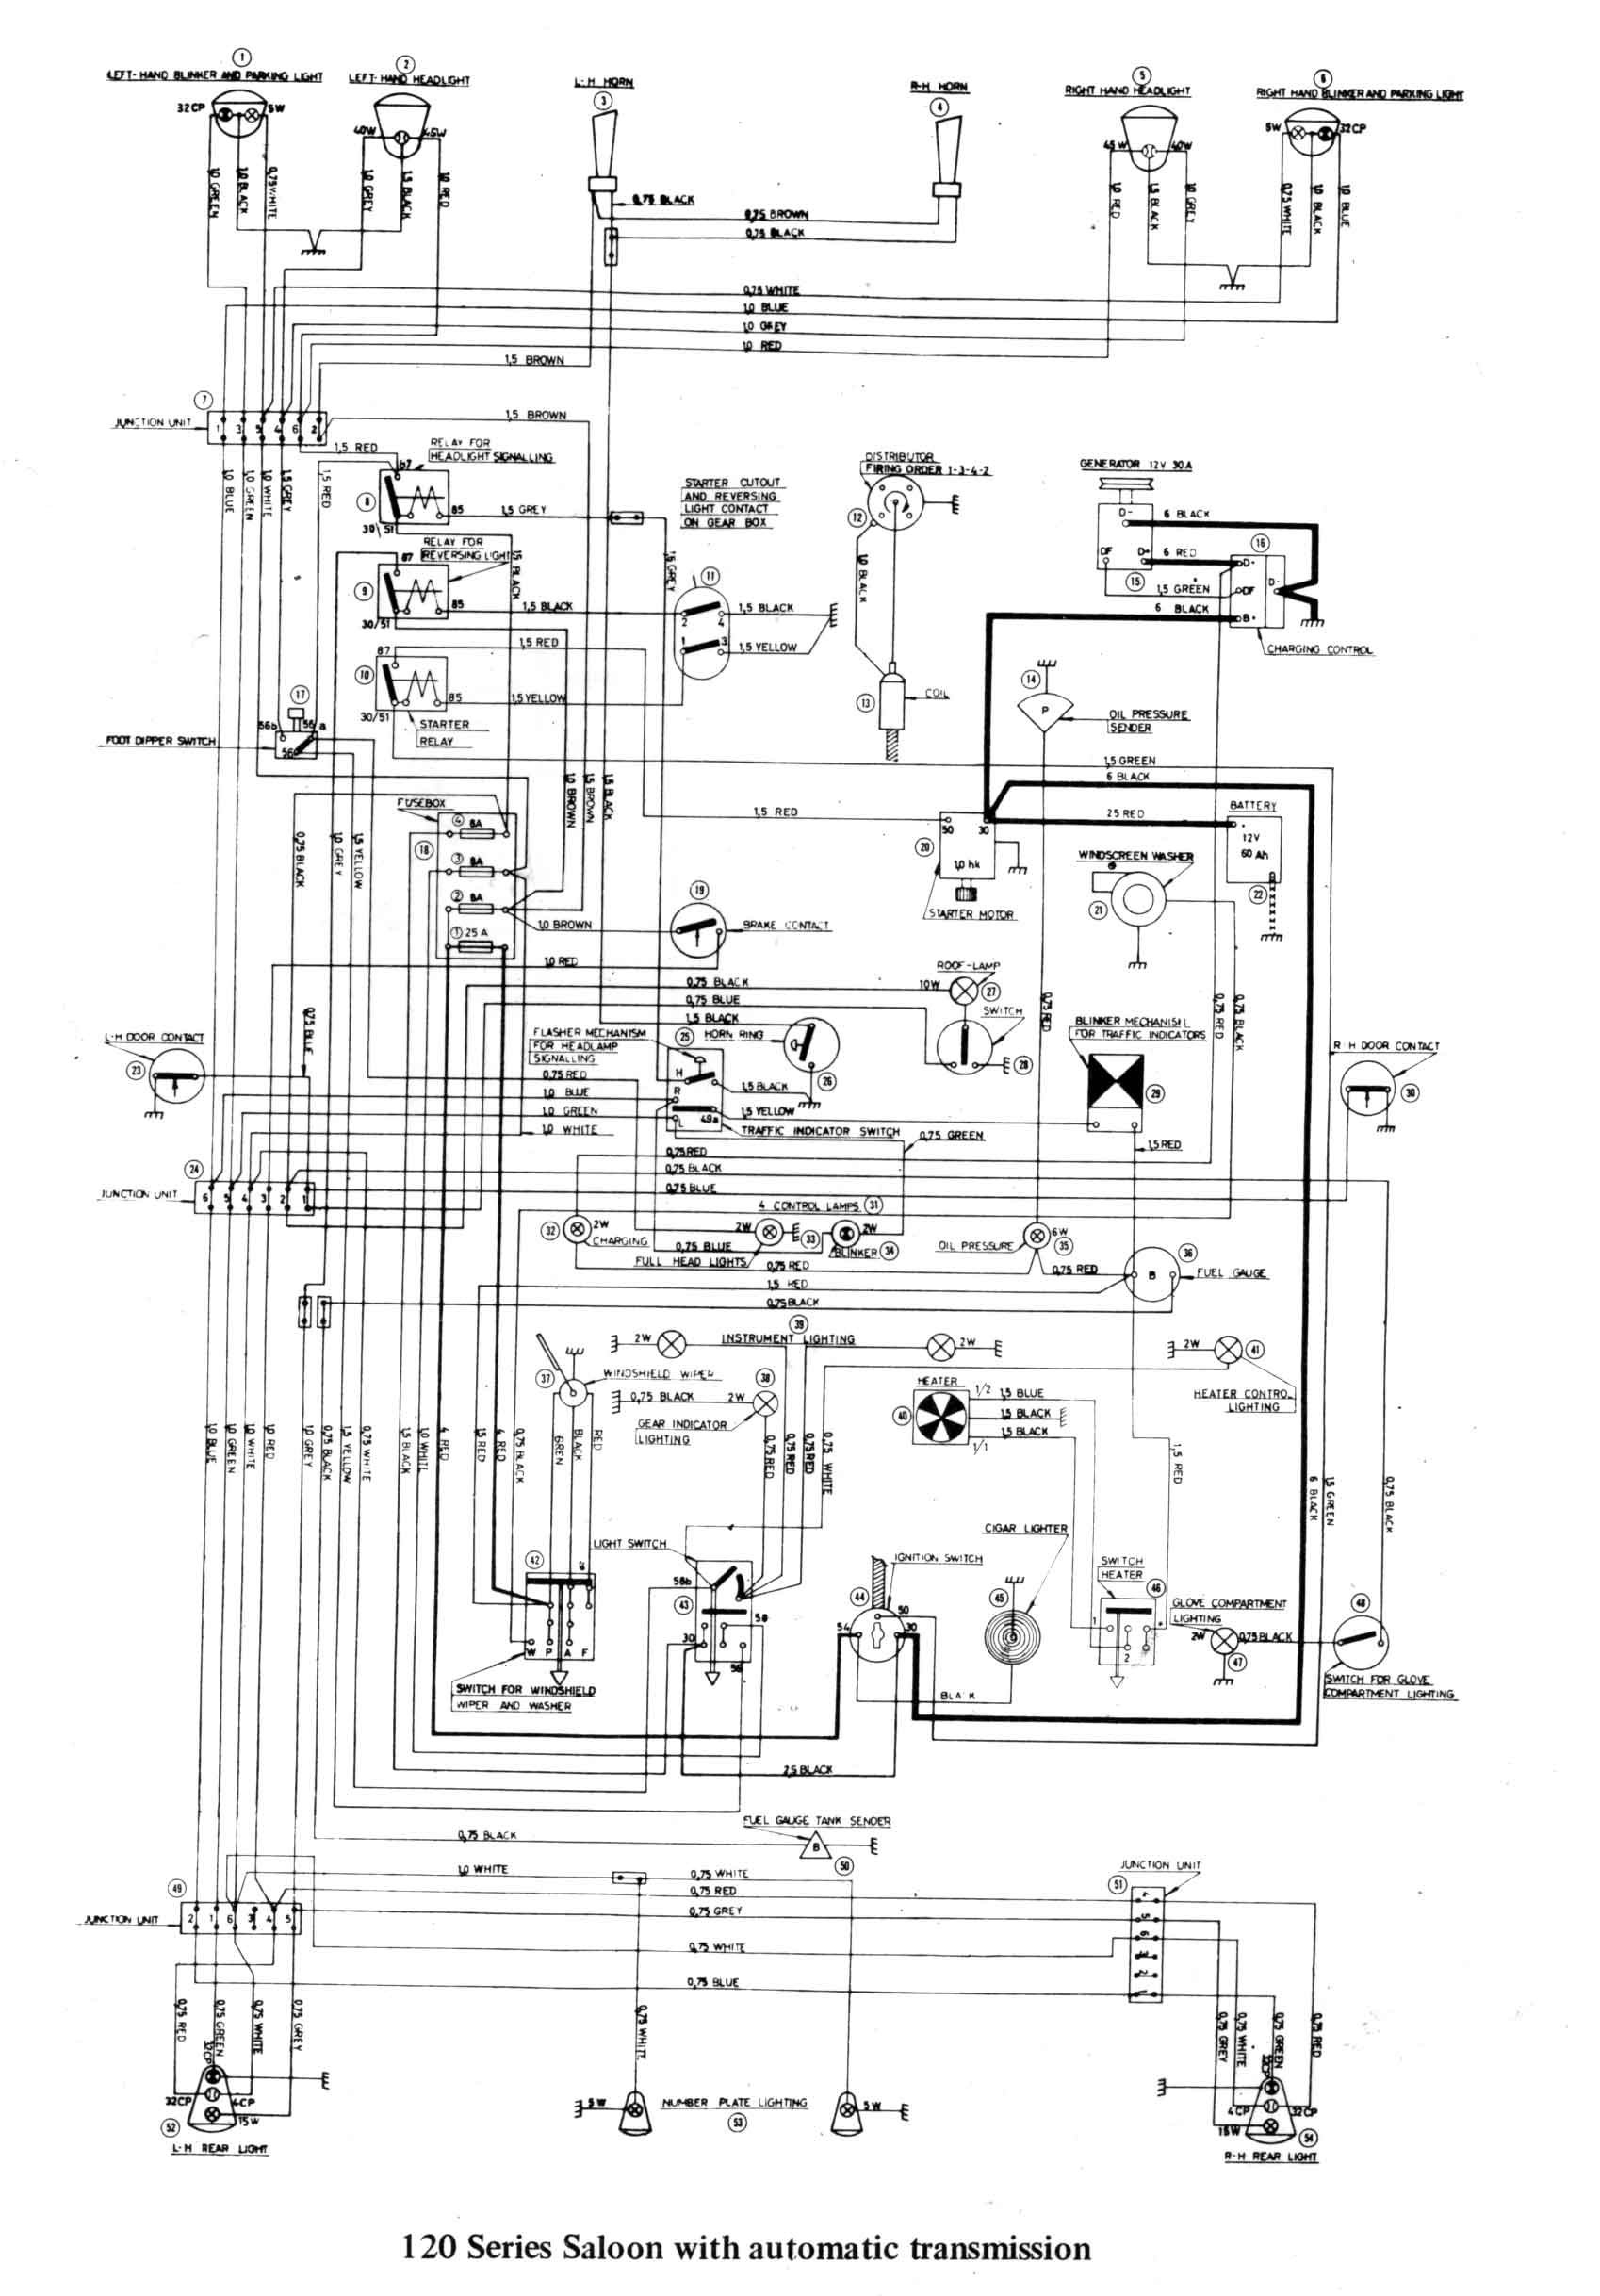 jaguar xk150 overdrive wiring diagram - wiring diagrams database  time-firewall - time-firewall.pisolagomme.it  pisolagomme.it